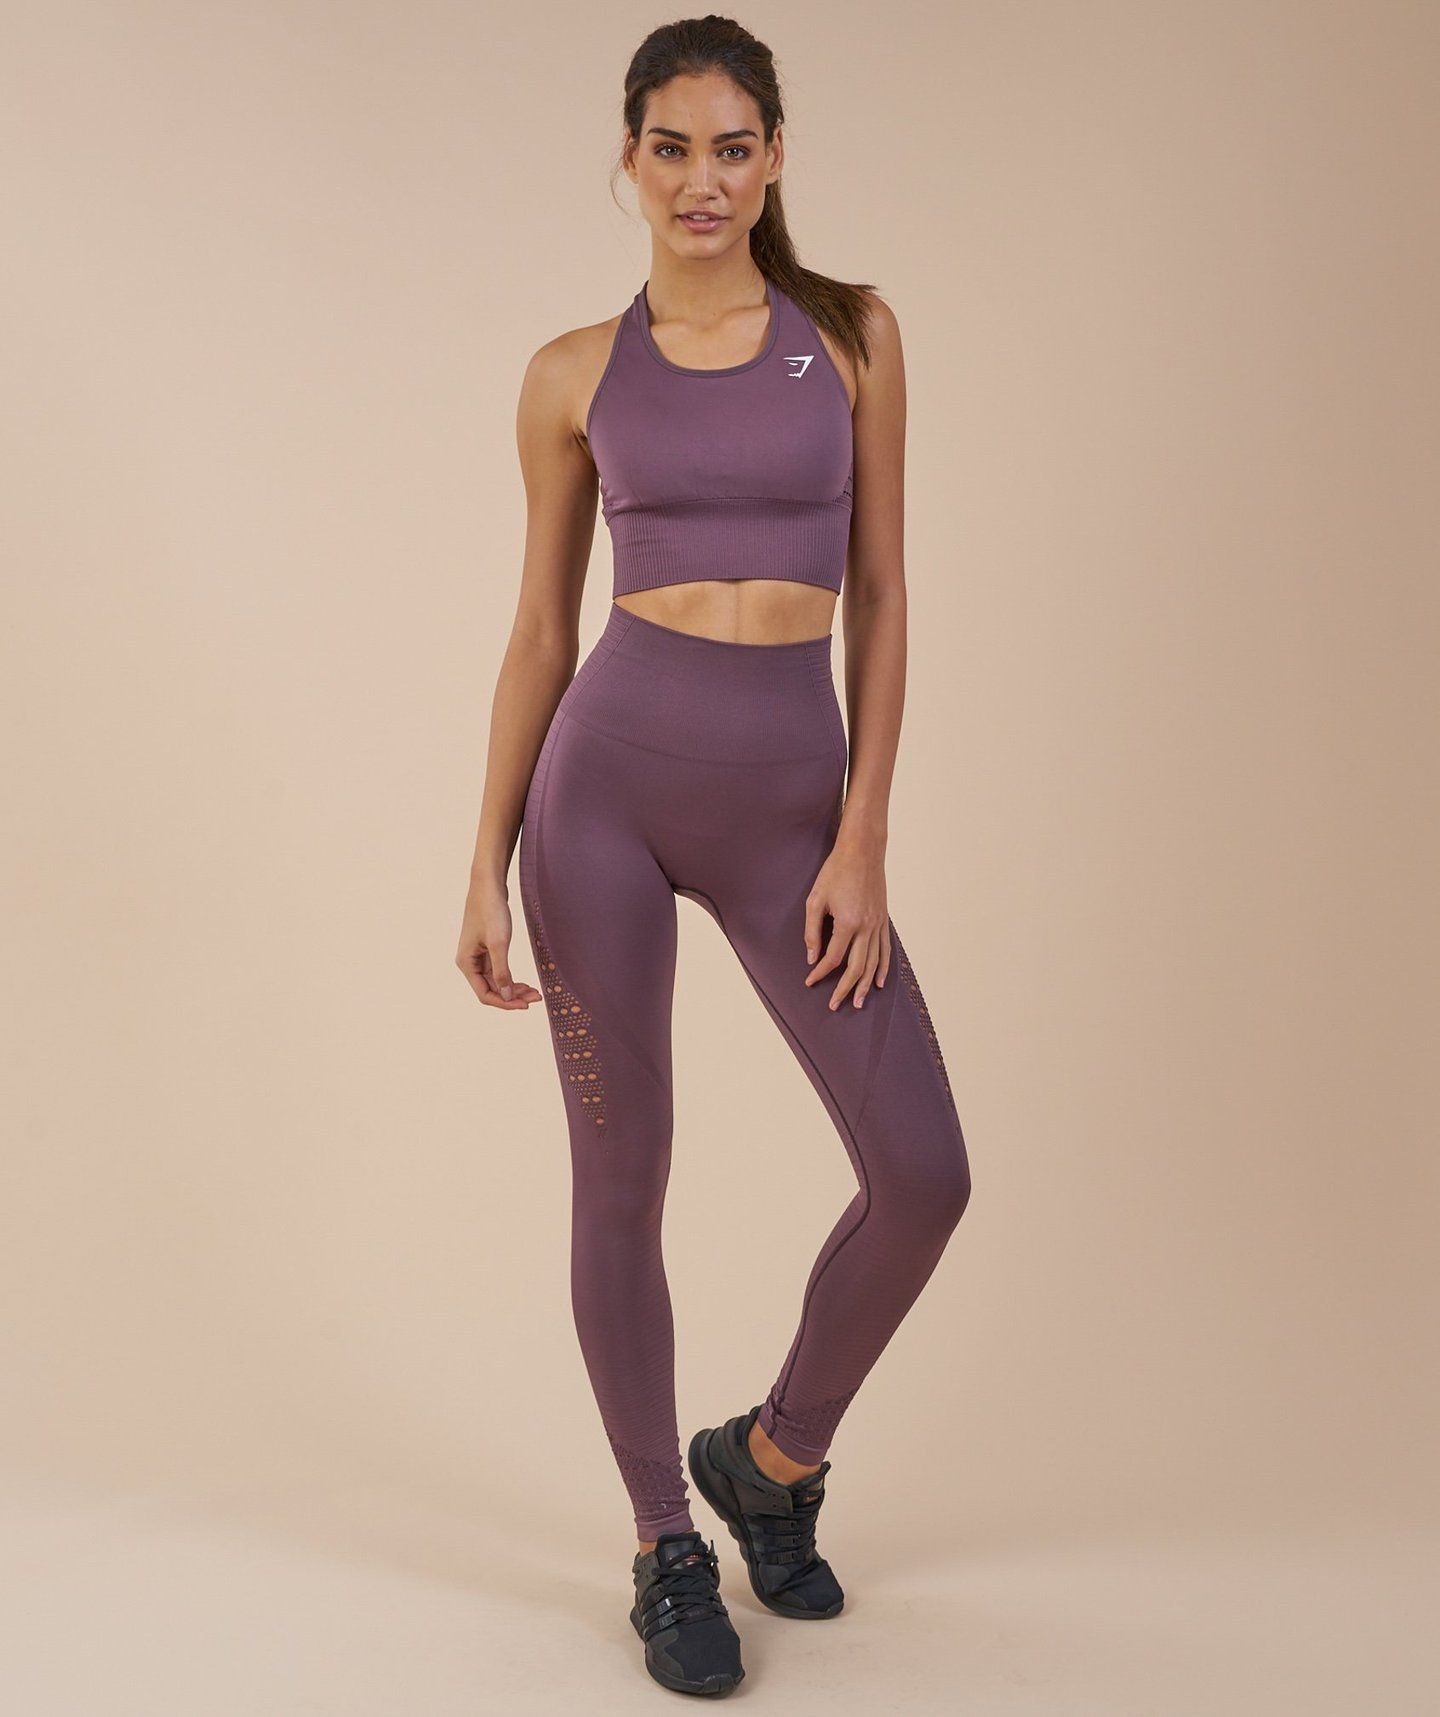 4c470a8d5bf28c Gymshark Seamless Energy High Waisted Leggings - Purple Wash 2 Gymshark  Energy Seamless High Waisted Leggings